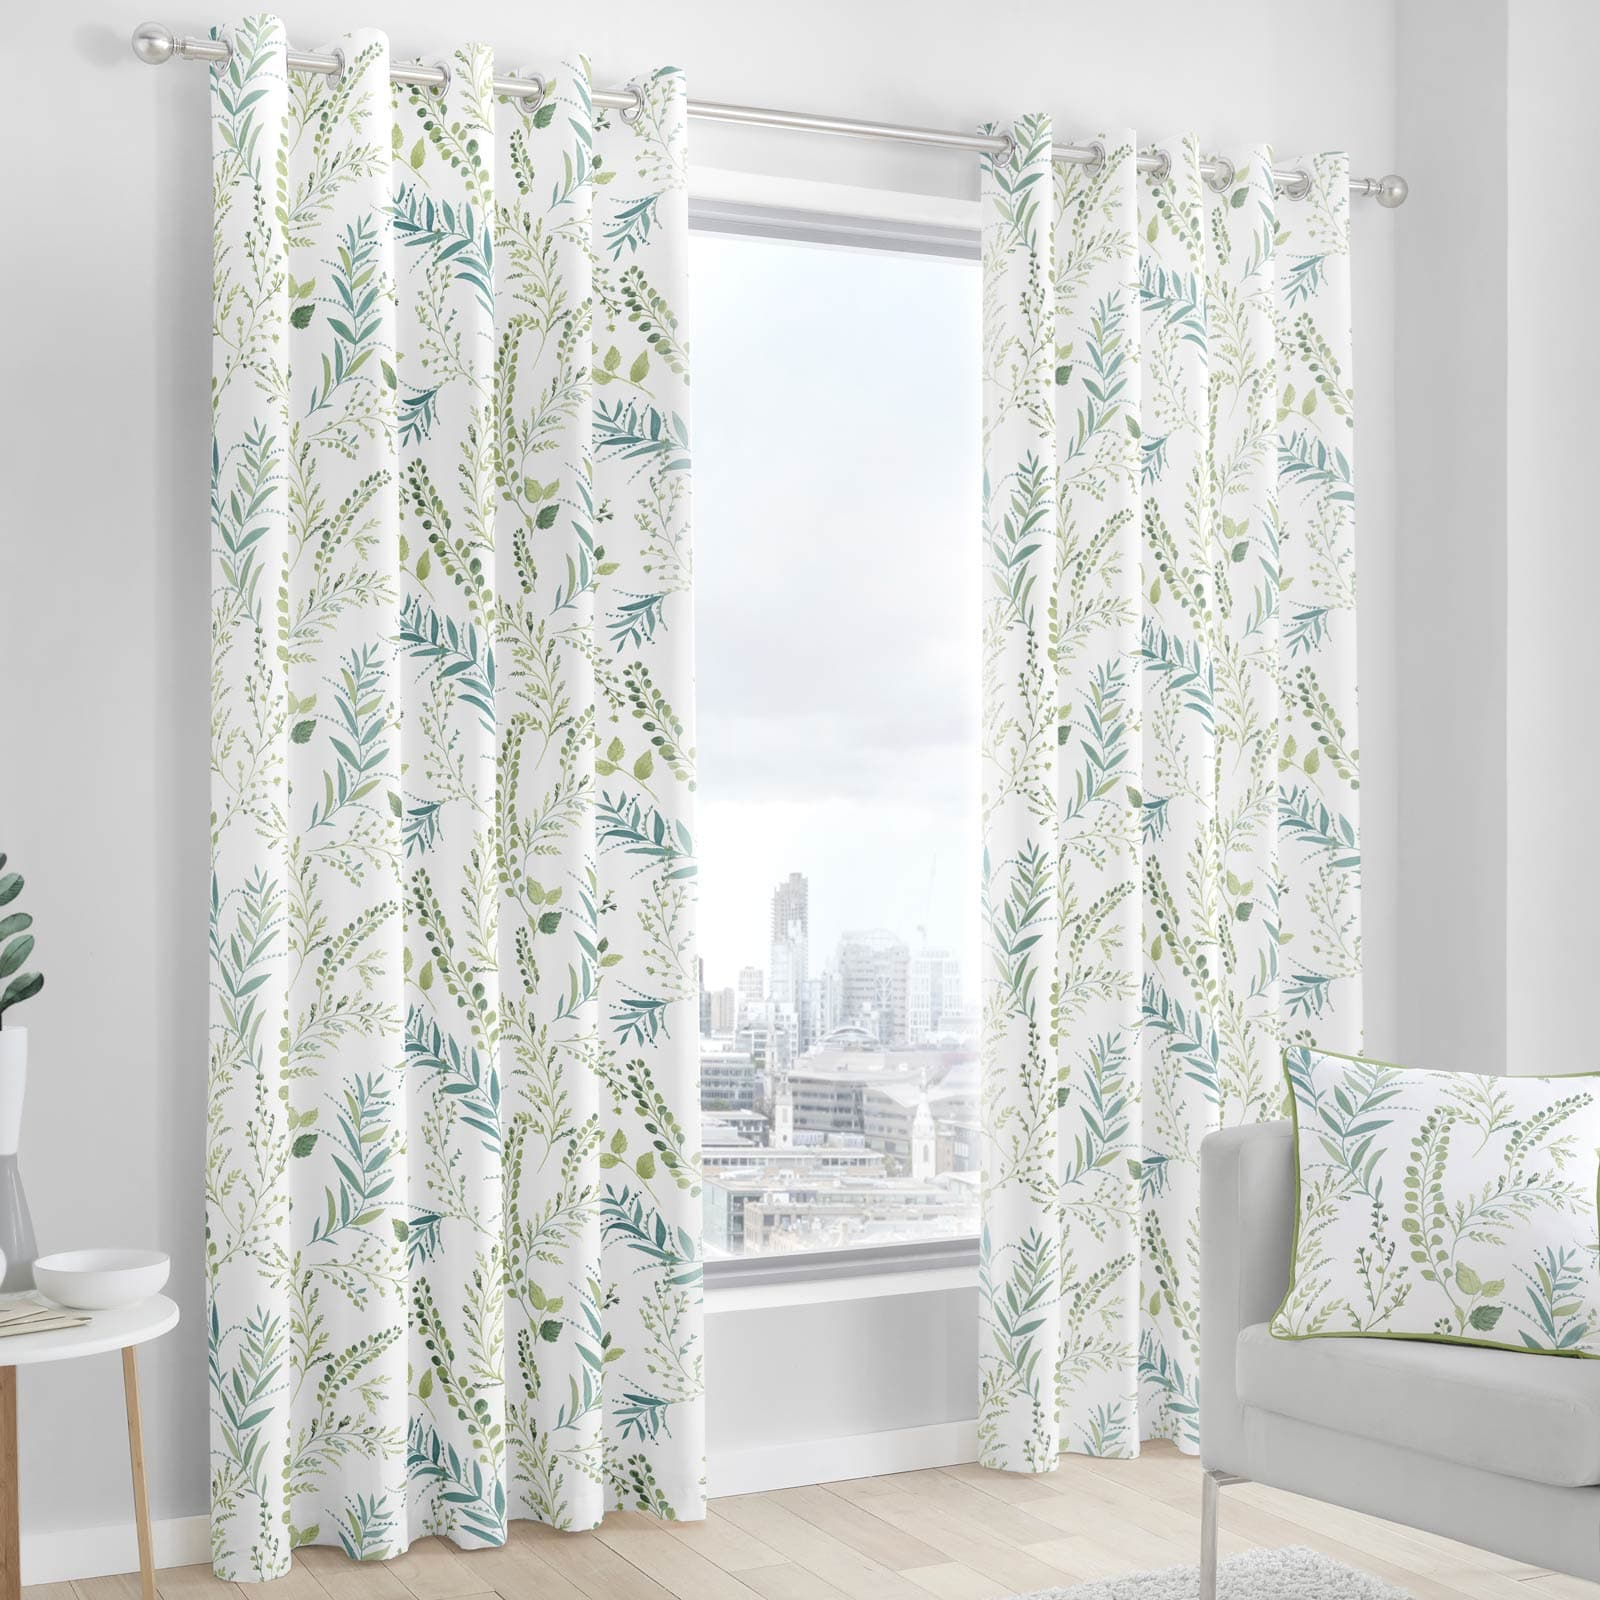 Fernworthy Leaf Print Lined Eyelet Curtains Green - 46'' x 54'' - Ideal Textiles